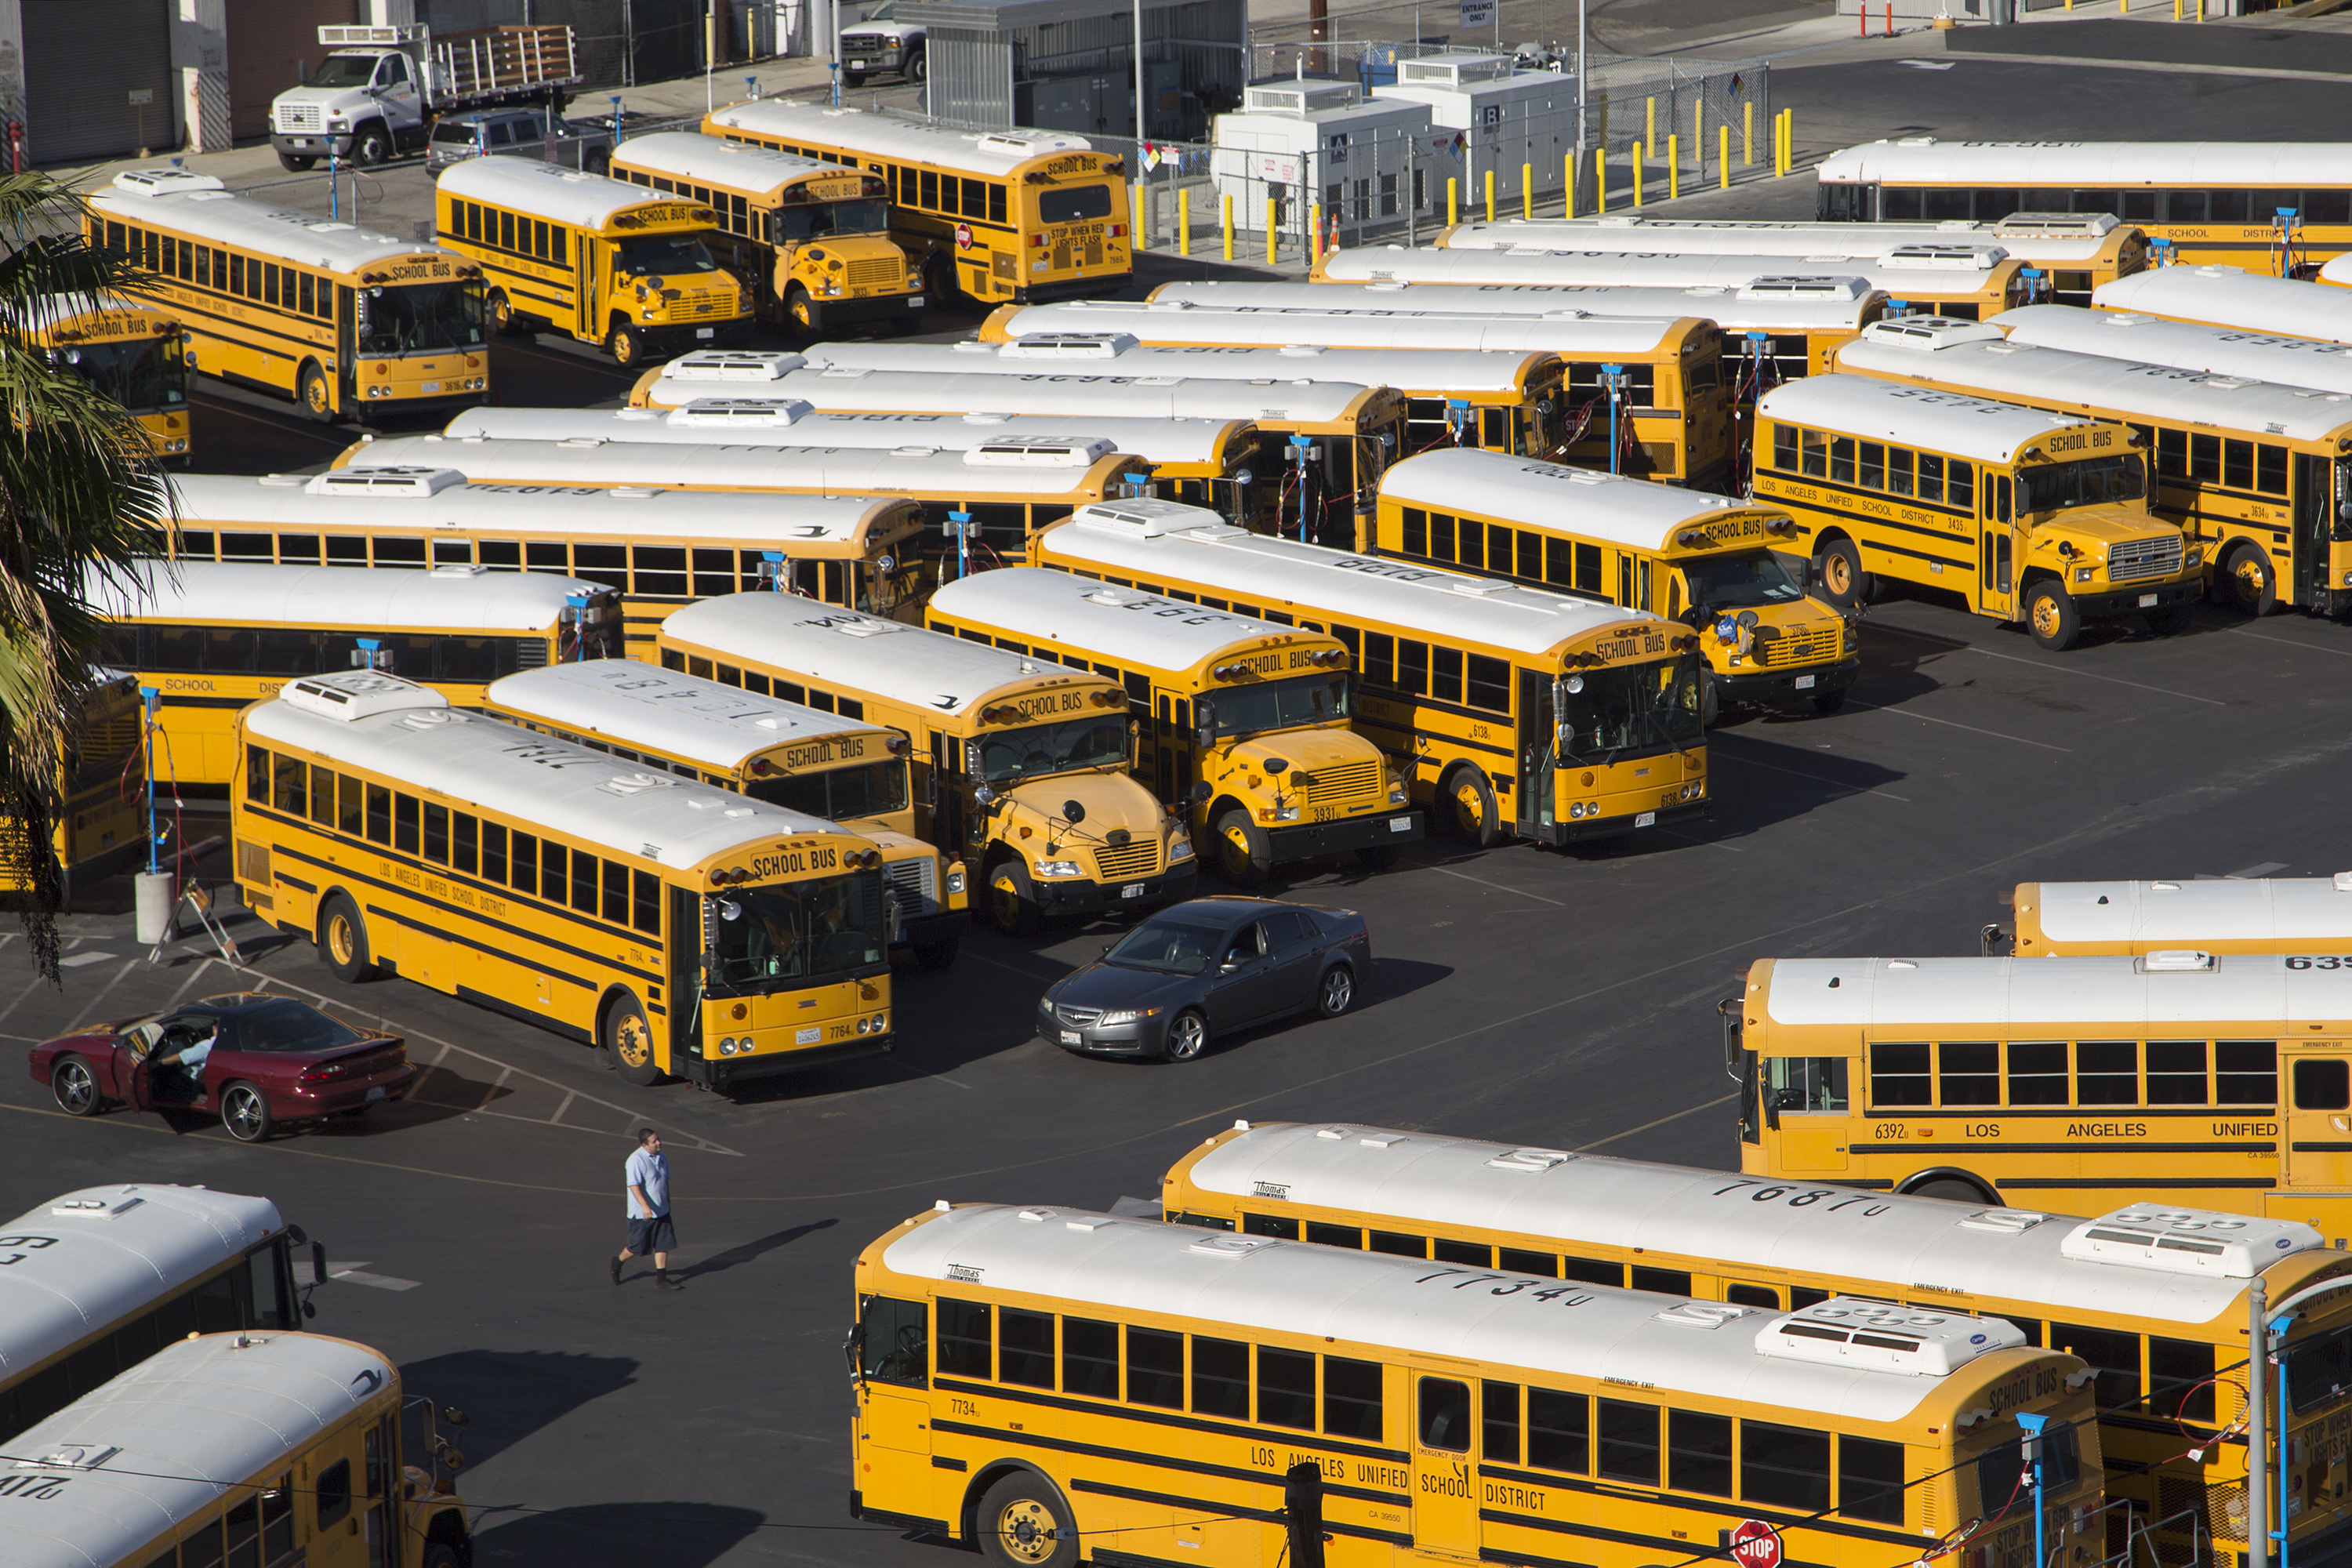 School buses stand idle as all Los Angeles city schools are shut down in reaction to a threat on December 15, 2015 in Los Angeles, California. A  bomb threat against LAUSD schools was sent to various members of the Los Angeles school board late last night, according to LAPD Chief Charlie Beck. Local authorities immediately notified the FBI.